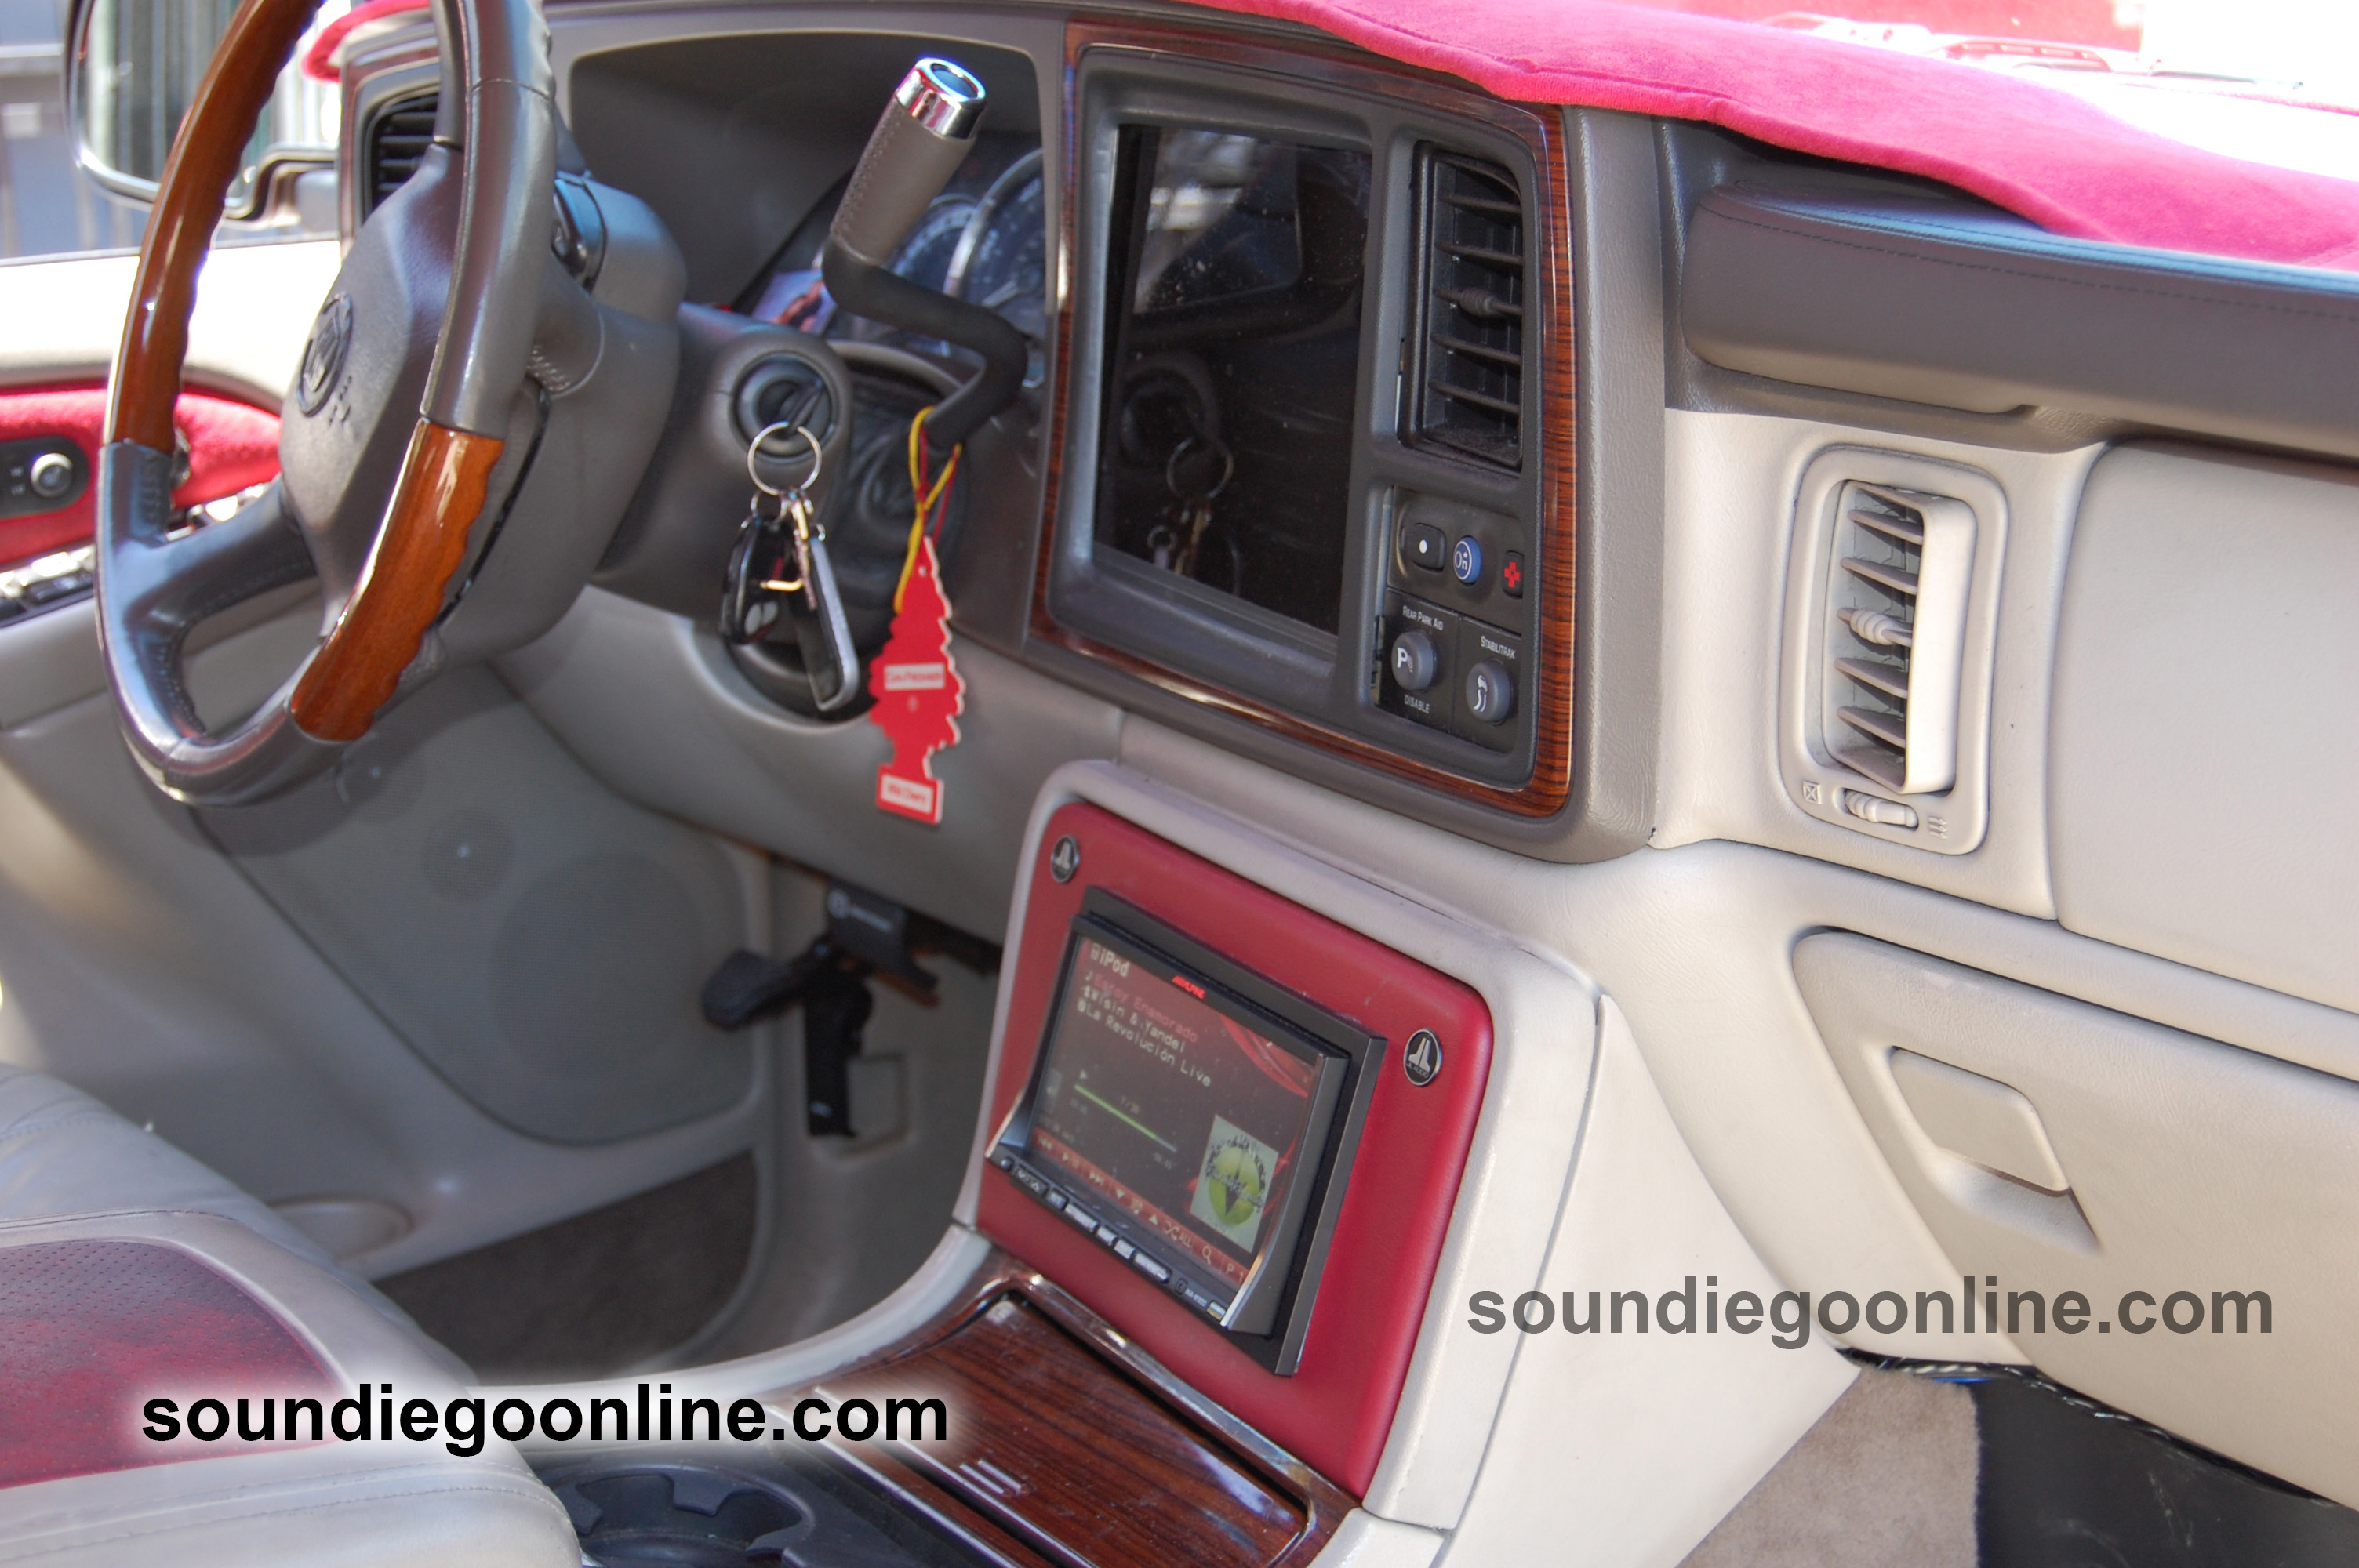 San Diego Custom Car Stereo Installation Leaders  U2013 Soundiegoonline Com Launch New Video